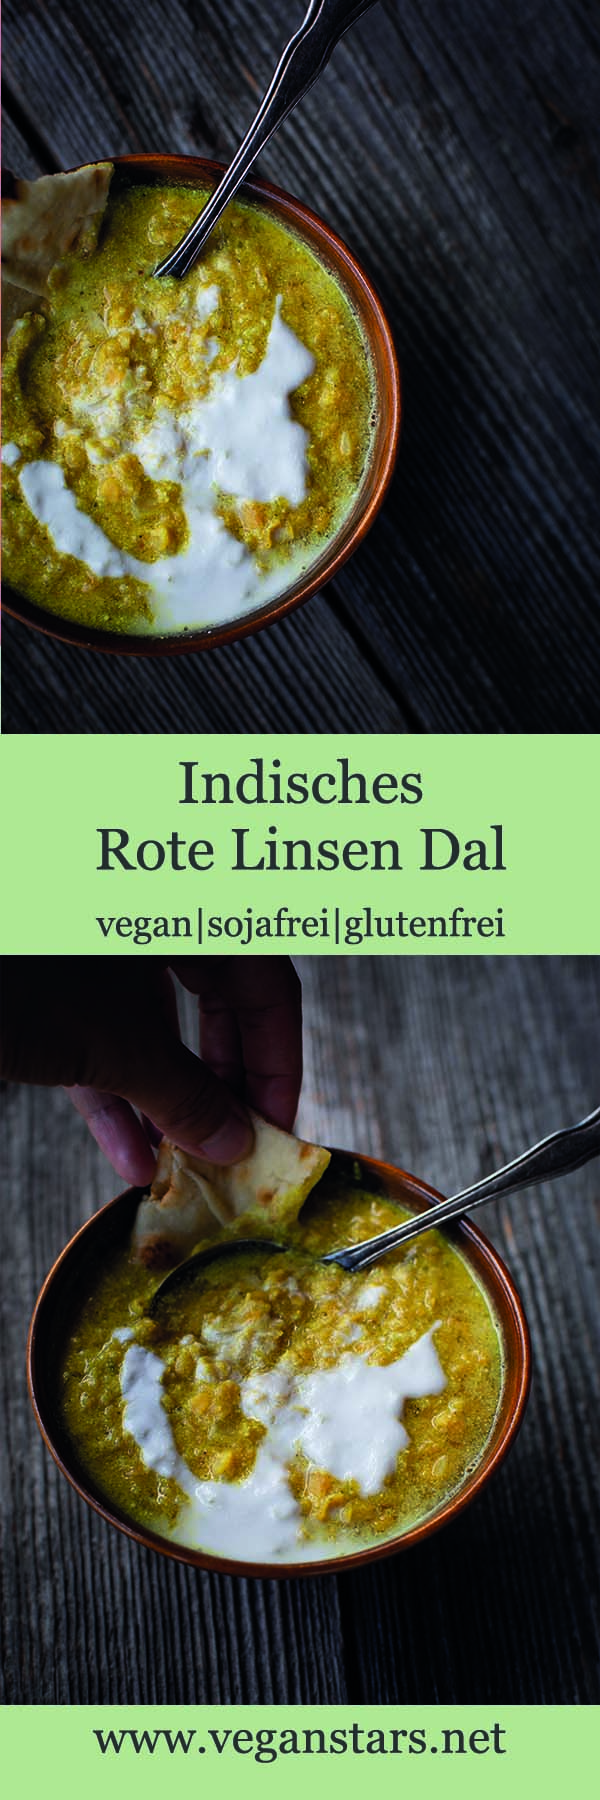 Indisches Rote Linsen Dal